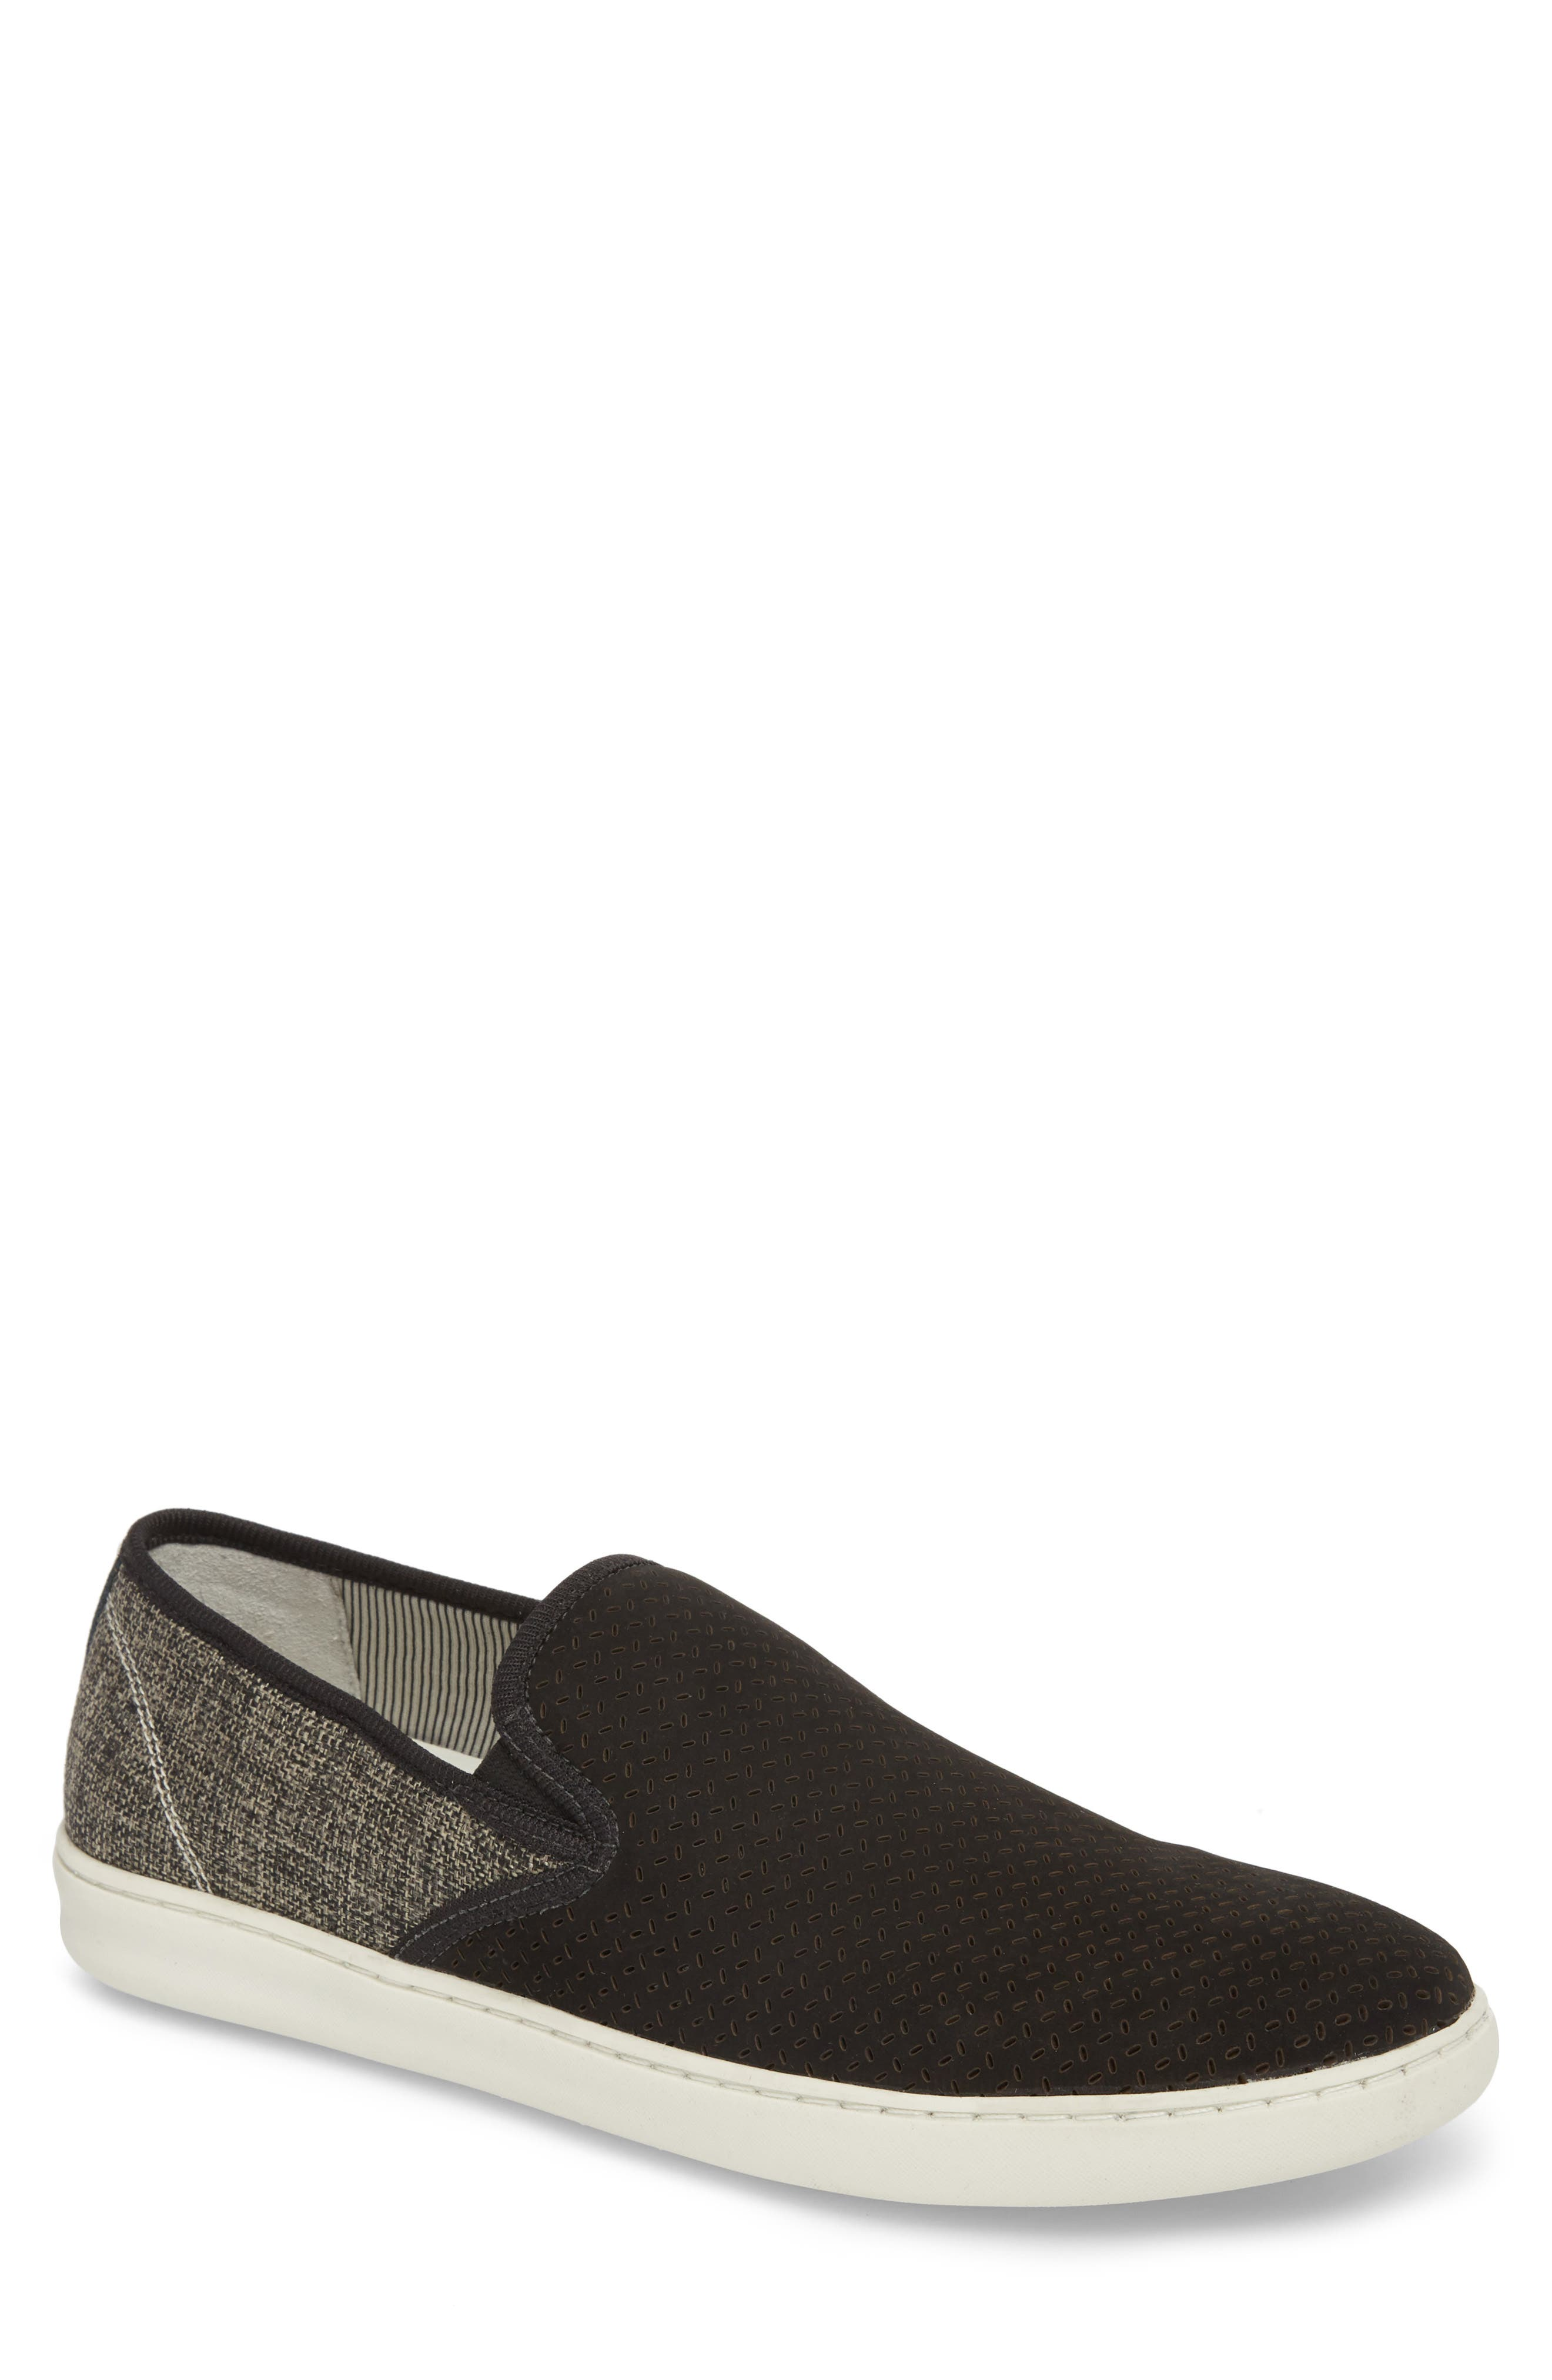 Malibu Perforated Loafer,                         Main,                         color, BLACK LEATHER / GREY CANVAS